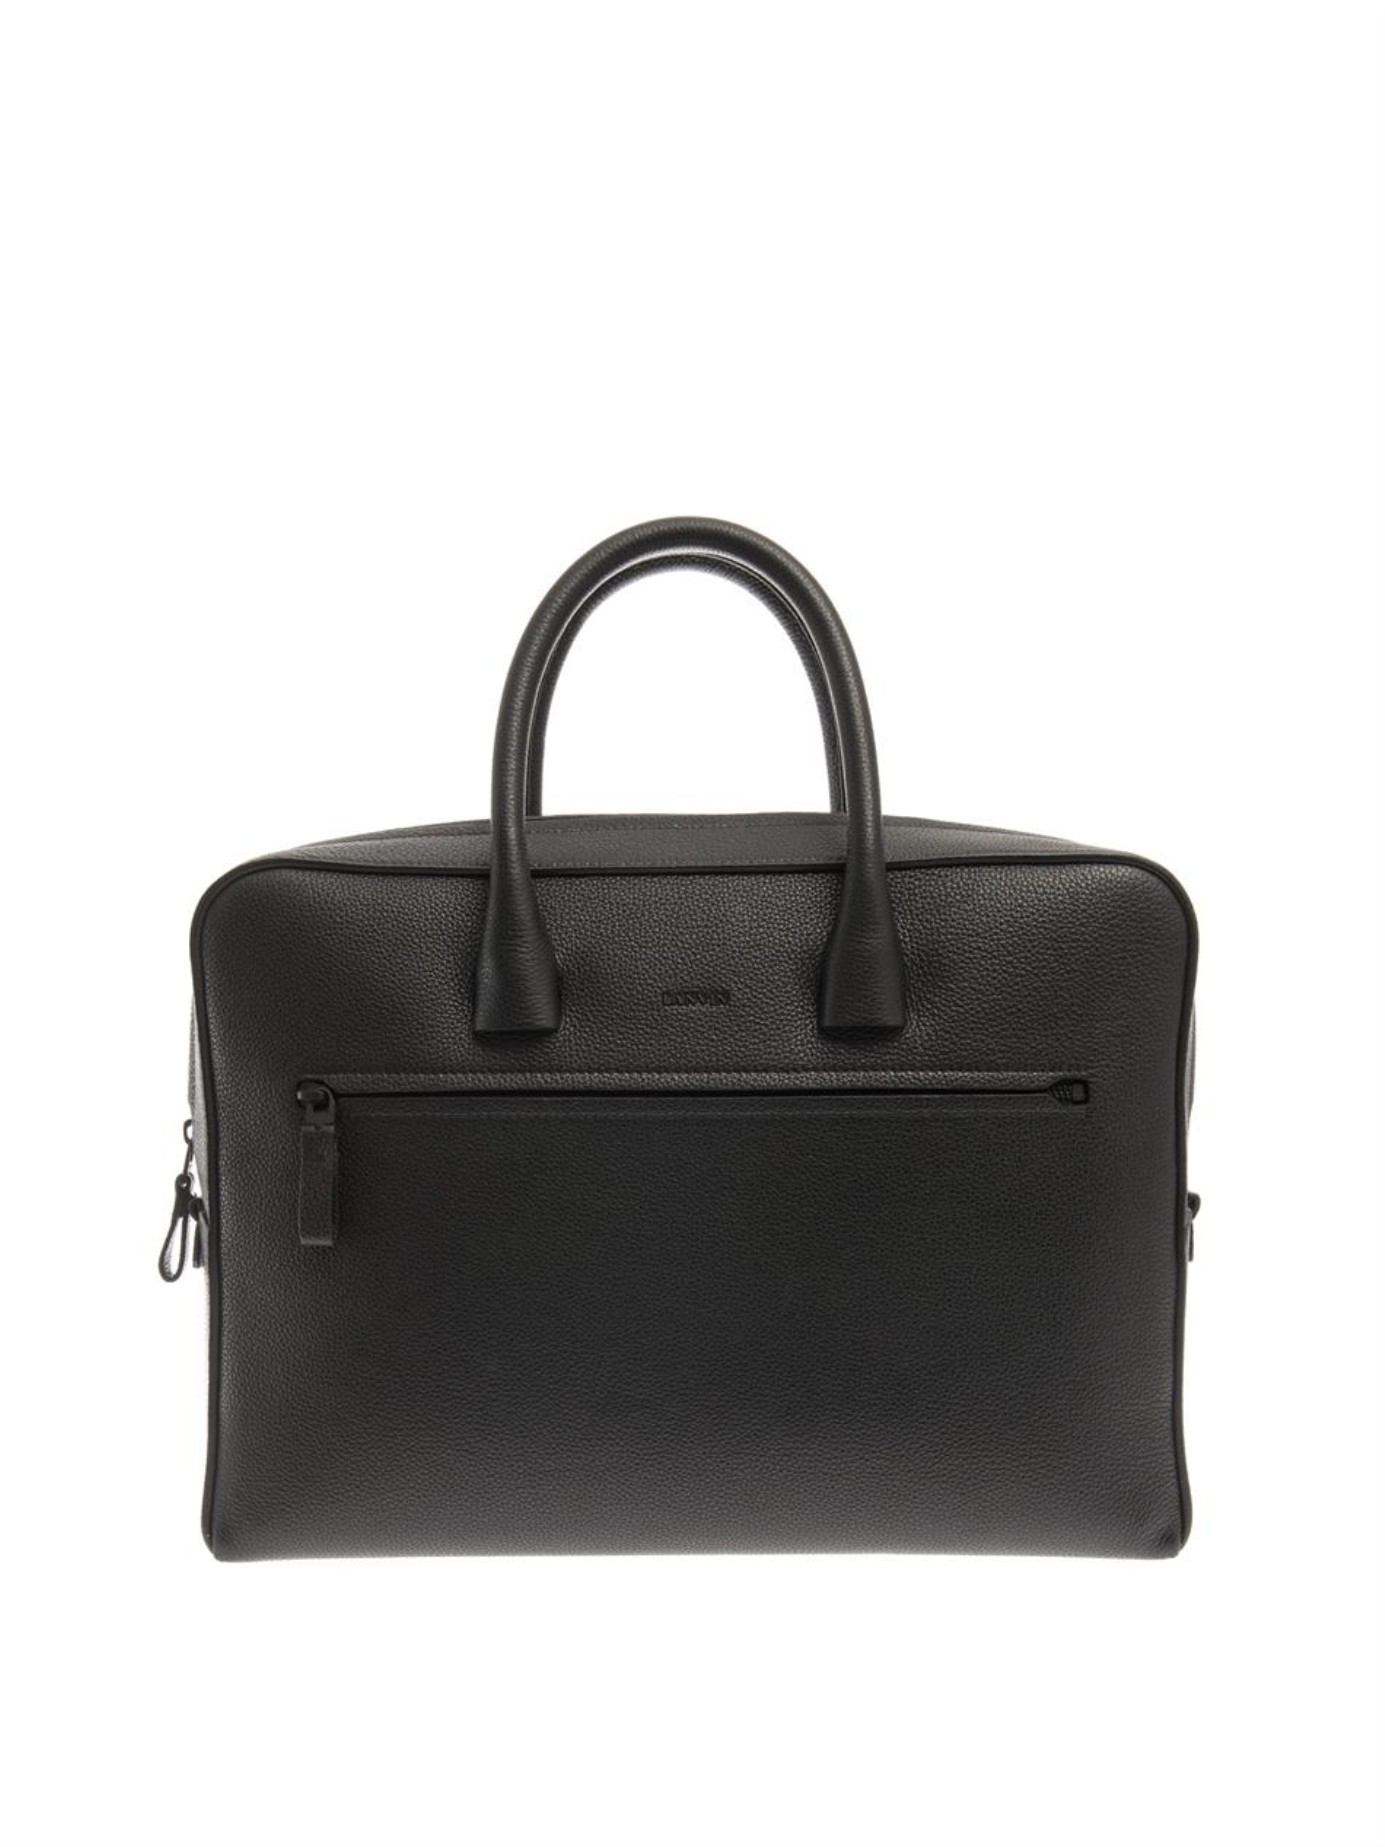 8deb170aaee1 Lyst - Lanvin Leather Briefcase in Black for Men